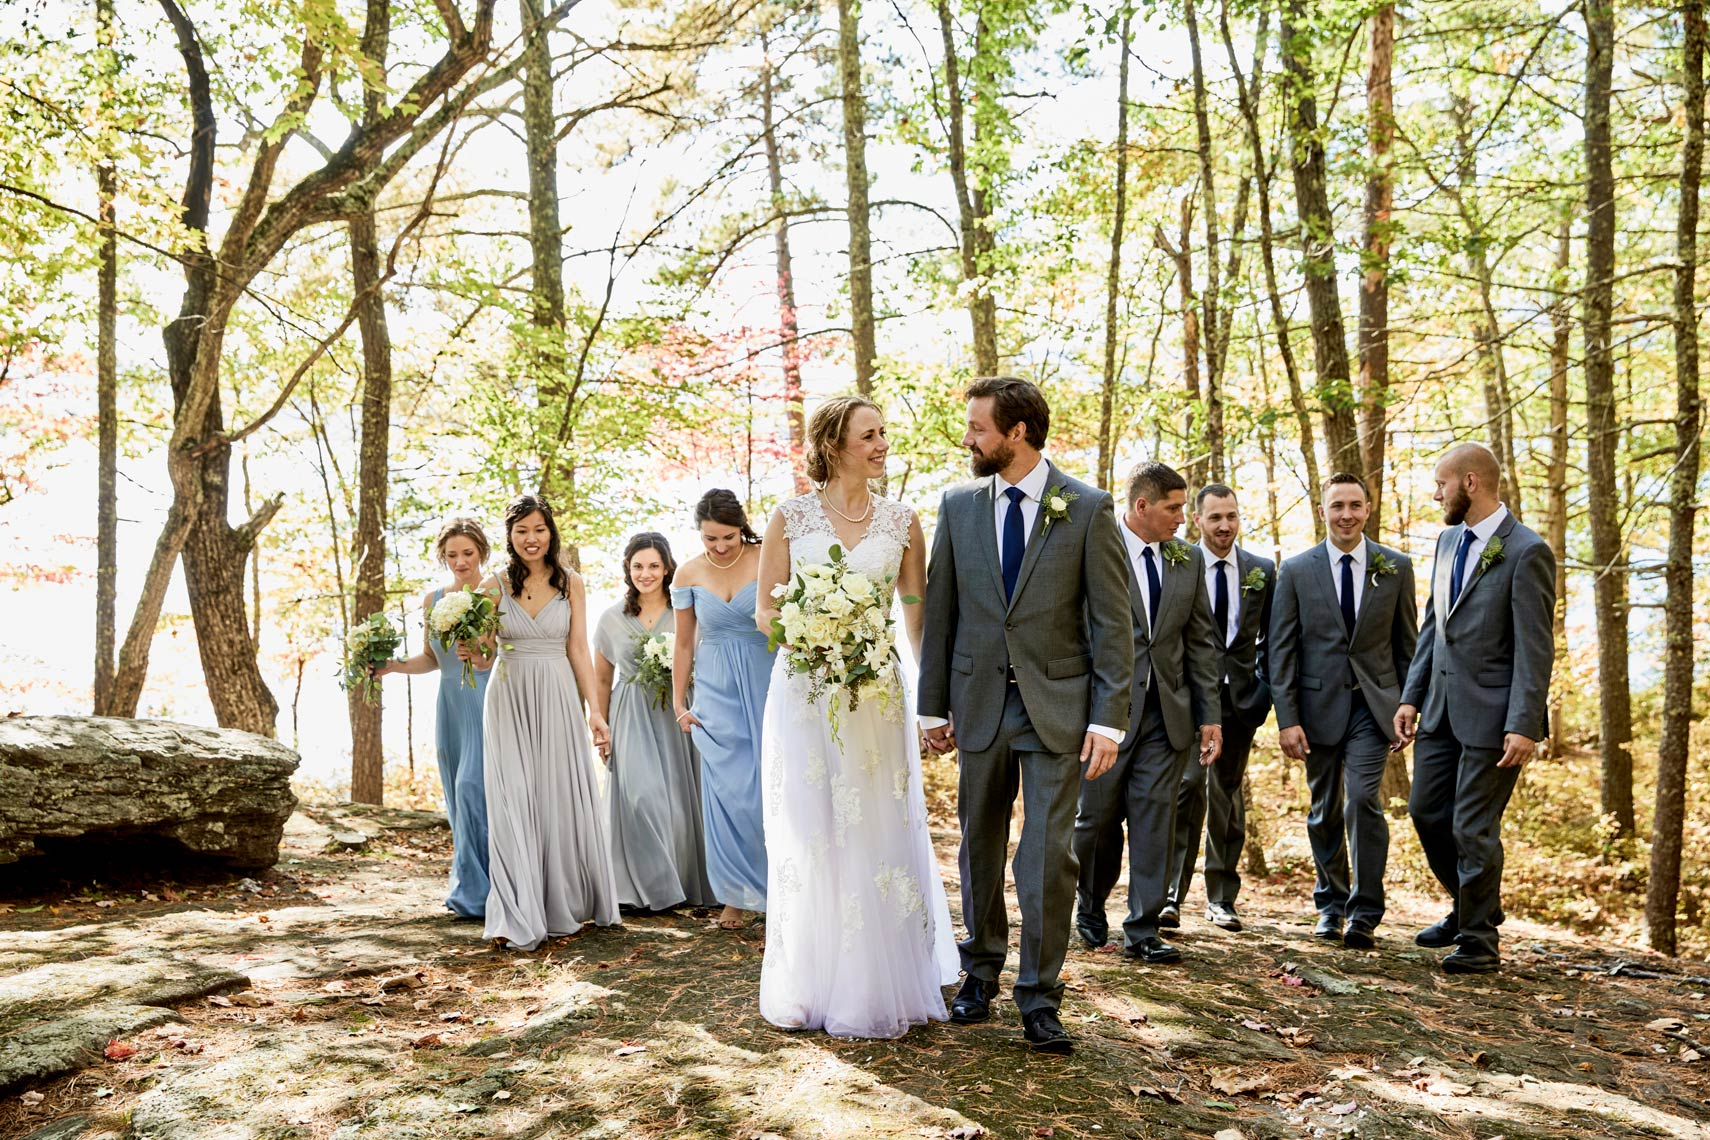 Mainecoastweddingphotography-v144